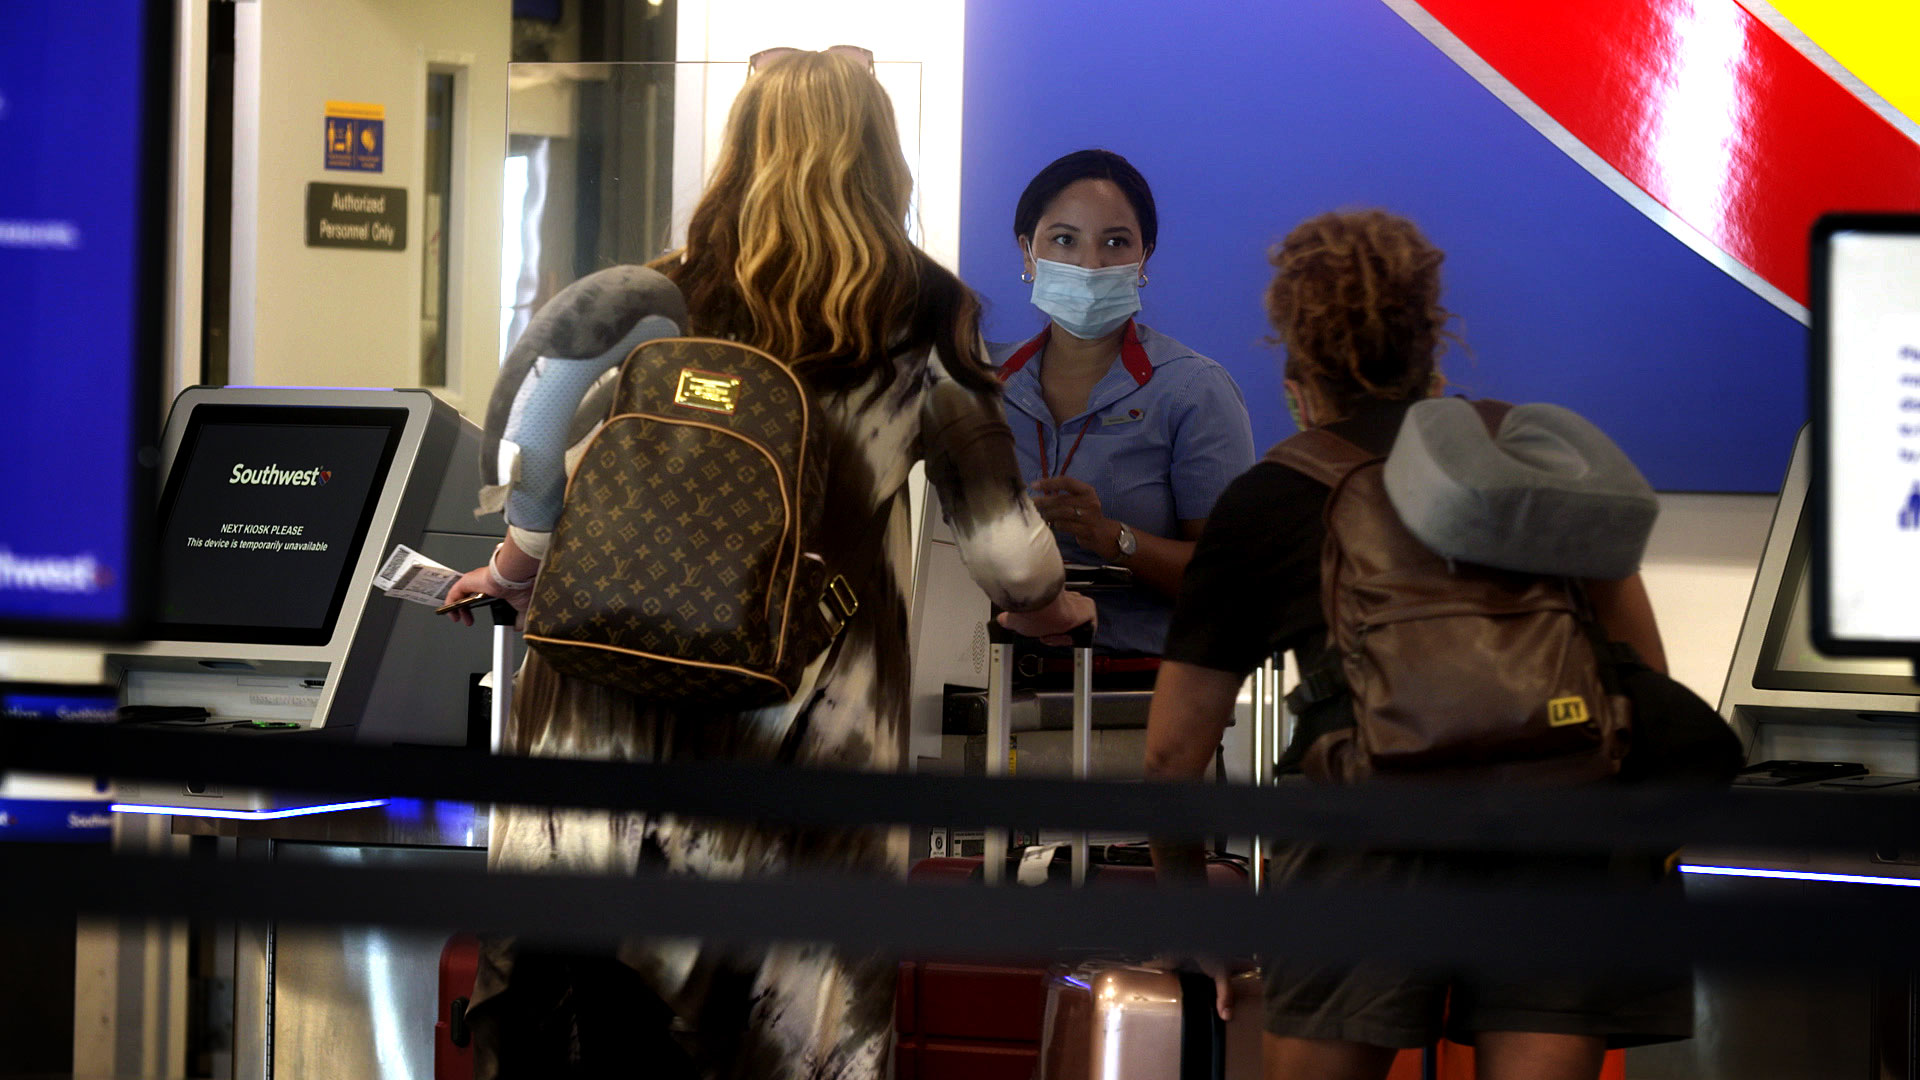 An employee for Southwest Airlines helps passengers at the ticket counter inside the Tucson International Airport on August 10, 2020.